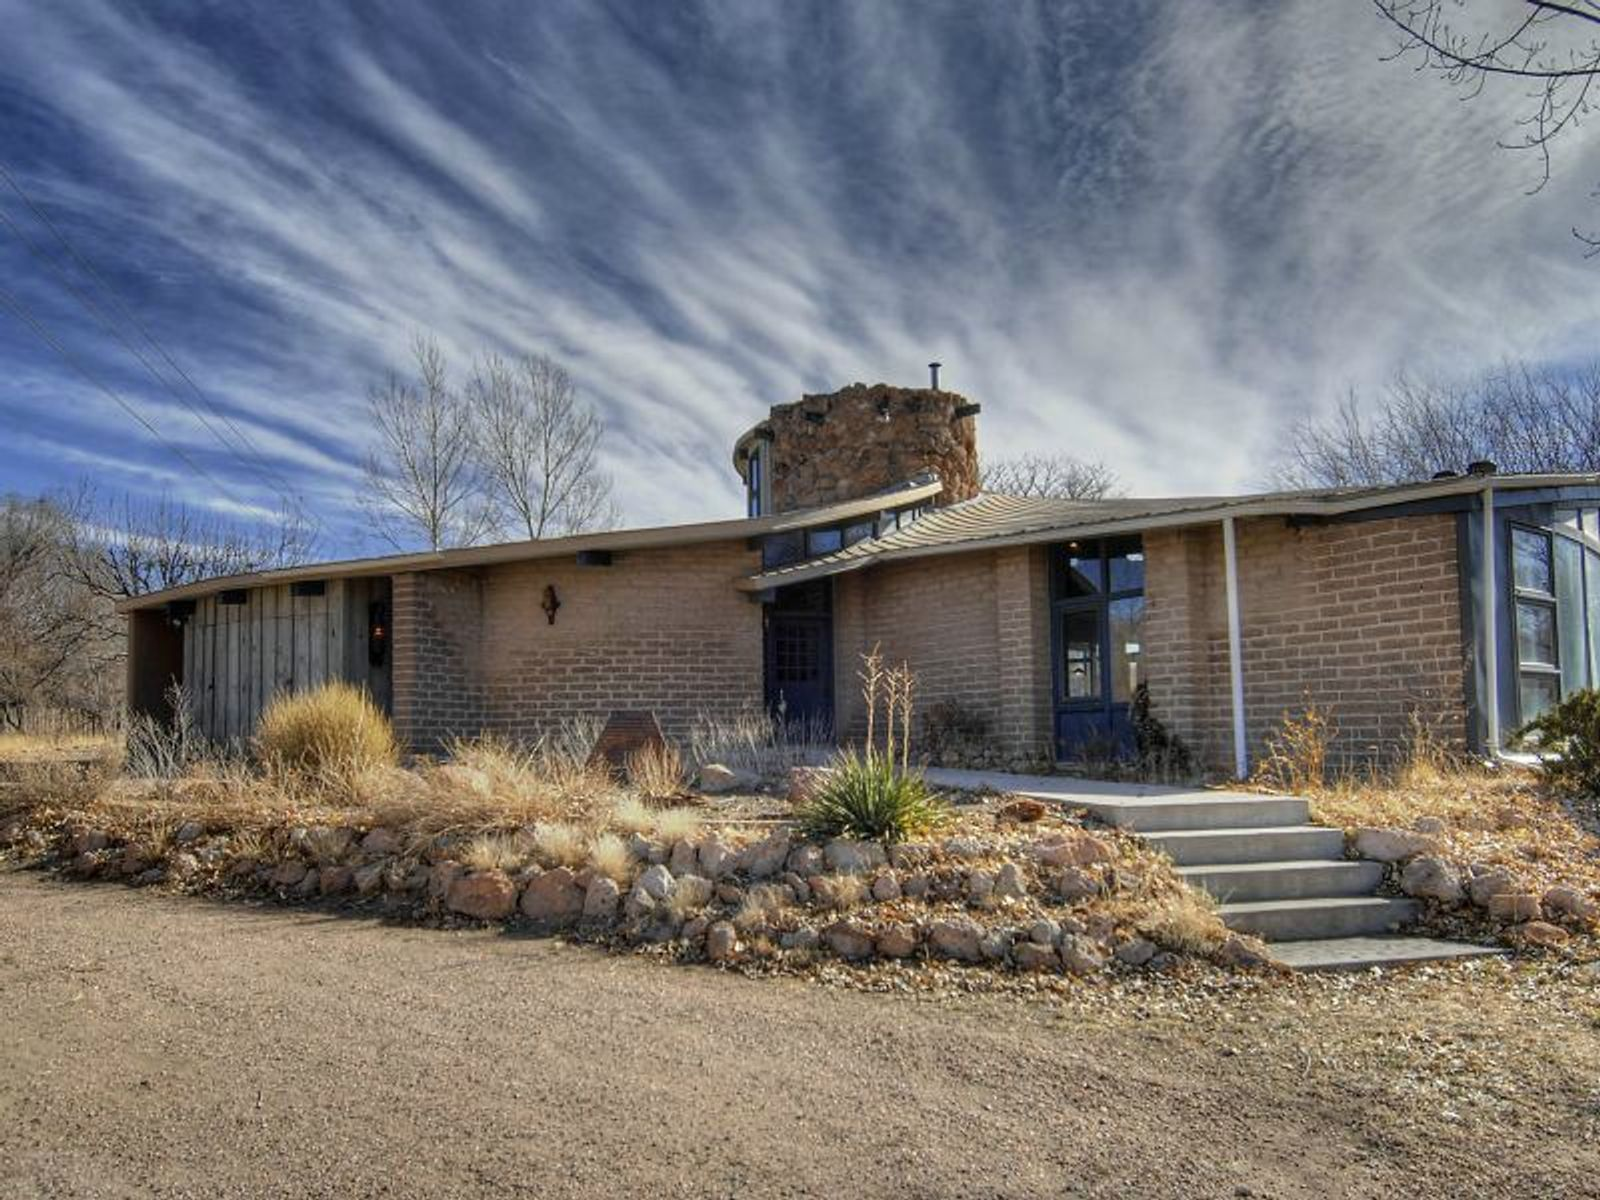 34 State Road 503, Santa Fe NM Single Family Home - Santa Fe Real Estate